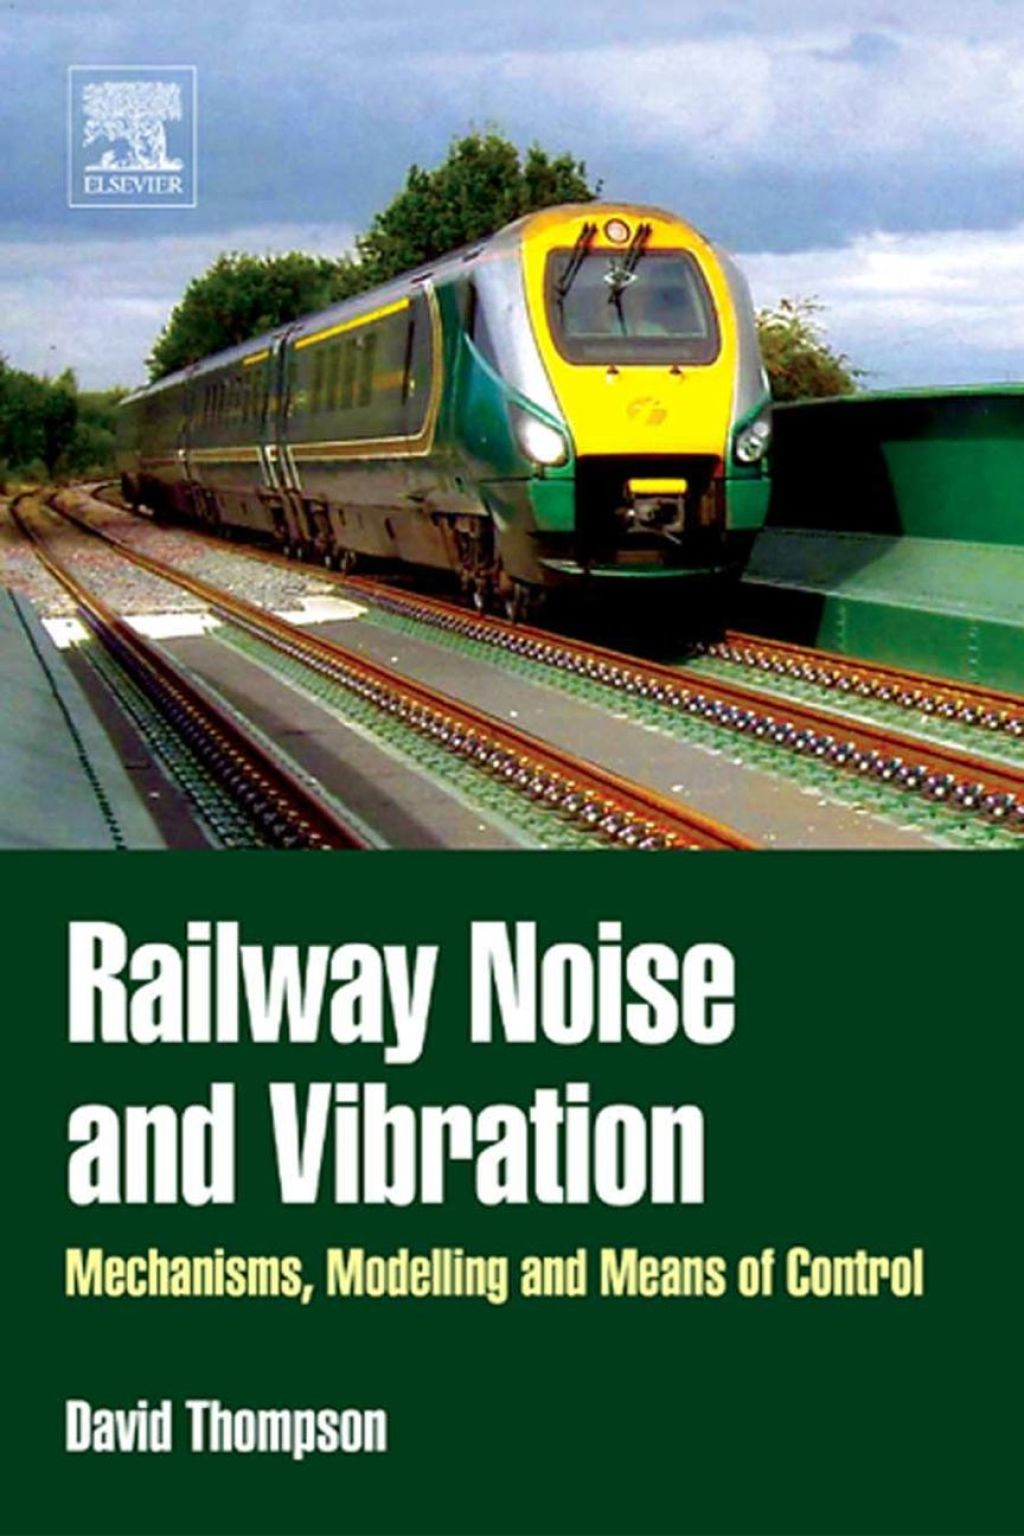 Railway Noise and Vibration: Mechanisms, Modelling and Means of Control (ebook) eBooks